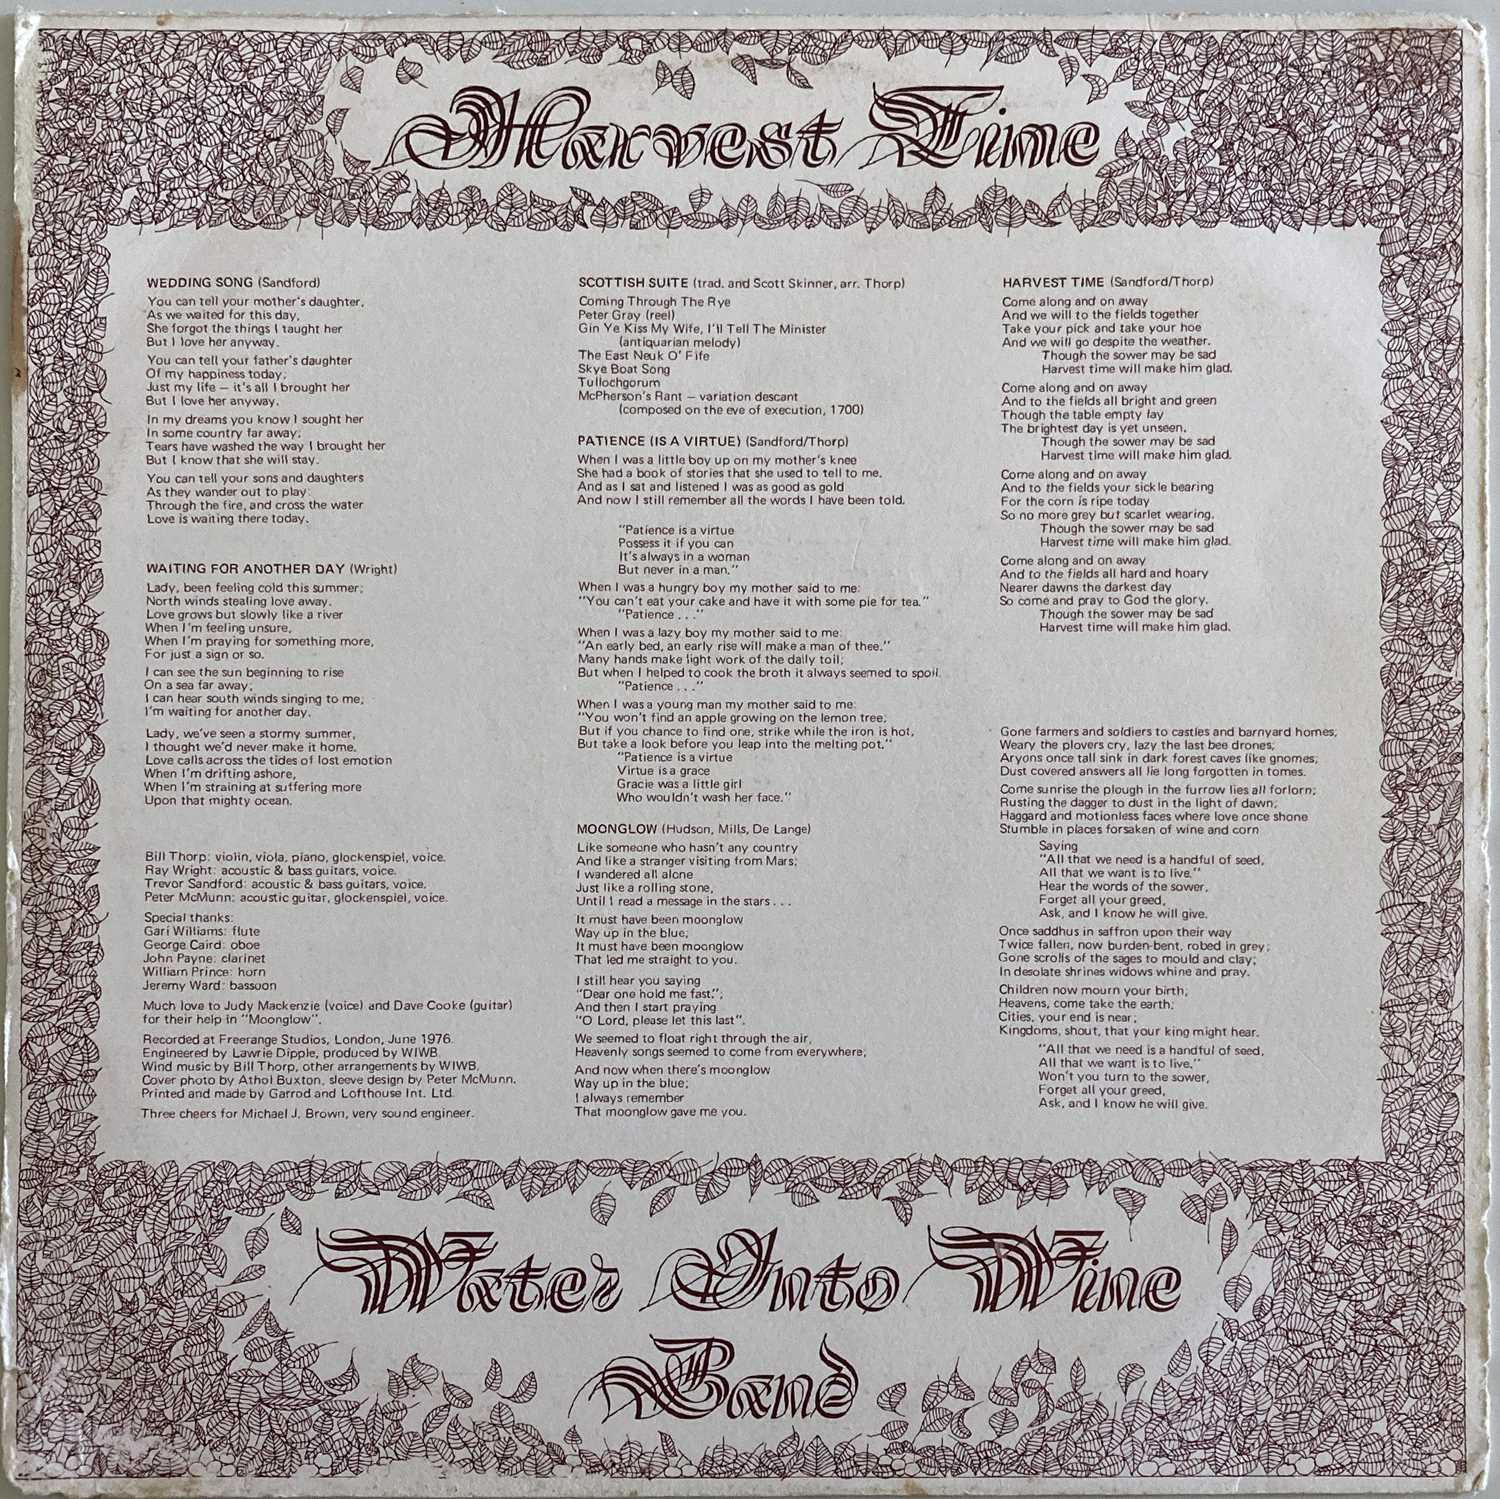 WATER INTO WINE BAND - HARVEST TIME LP (ORIGINAL SELF RELEASED PRESSING - CJT 002) - Image 2 of 4